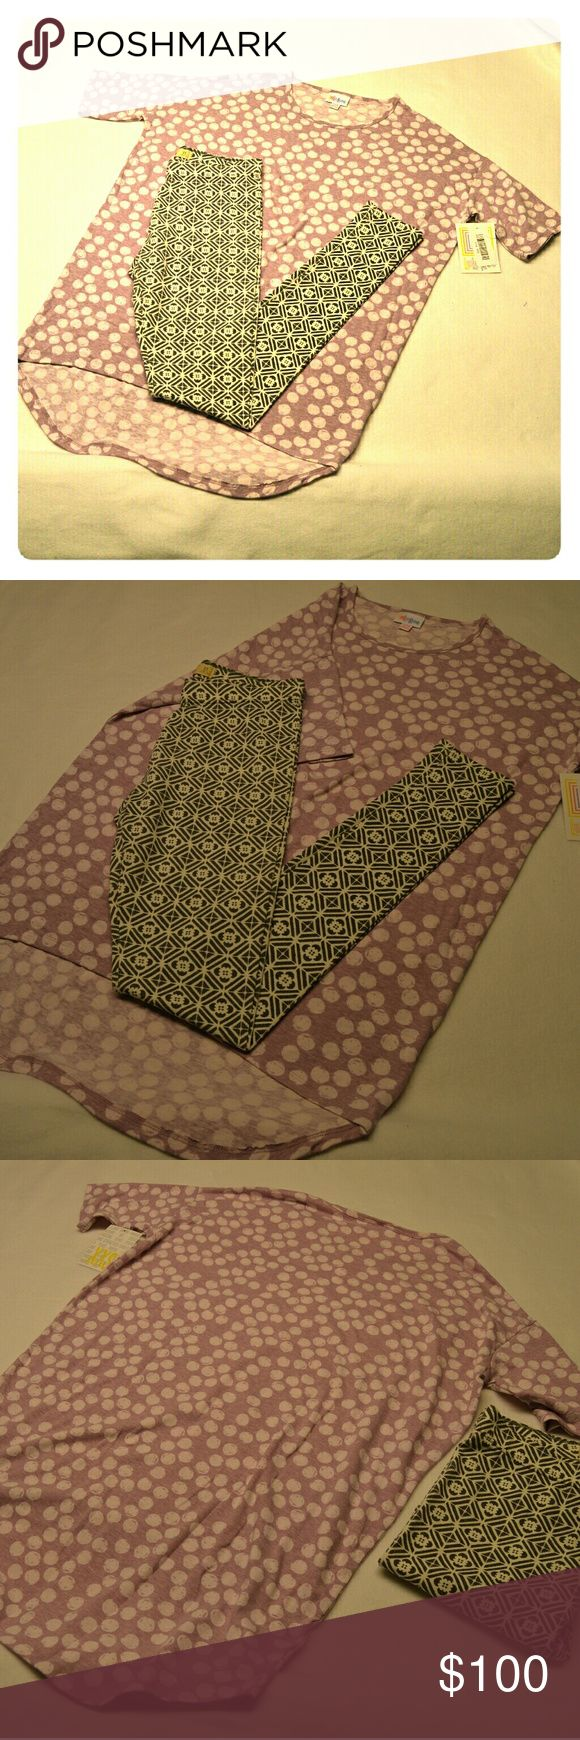 Lularoe Irma NWT + Hollister Leggings NWT Brand new with tag light purple and polka dot Irma and NWT XS Hollister grey ans white leggings. Brand new, come in plastic LulaRoe bag with tag. Price firm, Poshmark takes 20% in fees. *ship same/next day *no holds/trades *pet free *smoke free home Lularoe Tops Tees - Long Sleeve